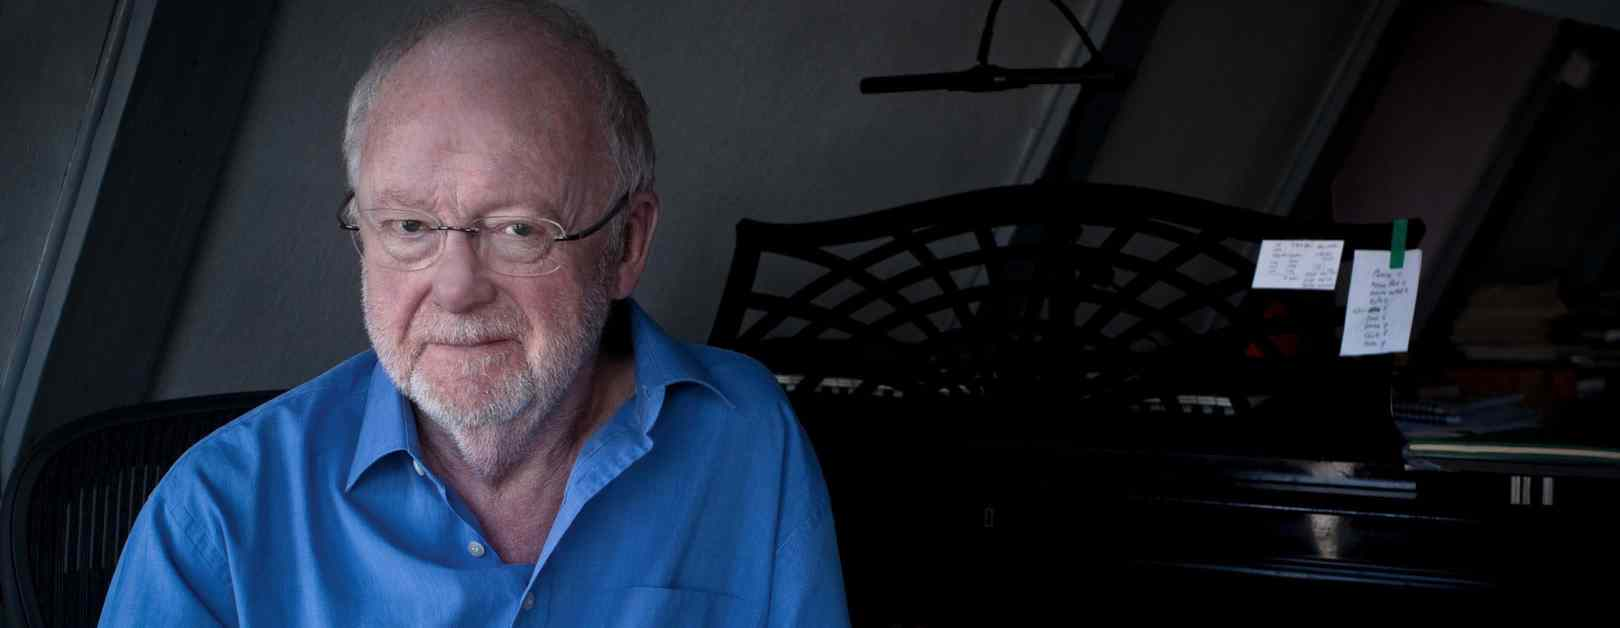 Nightcap: Curated by Louis Andriessen